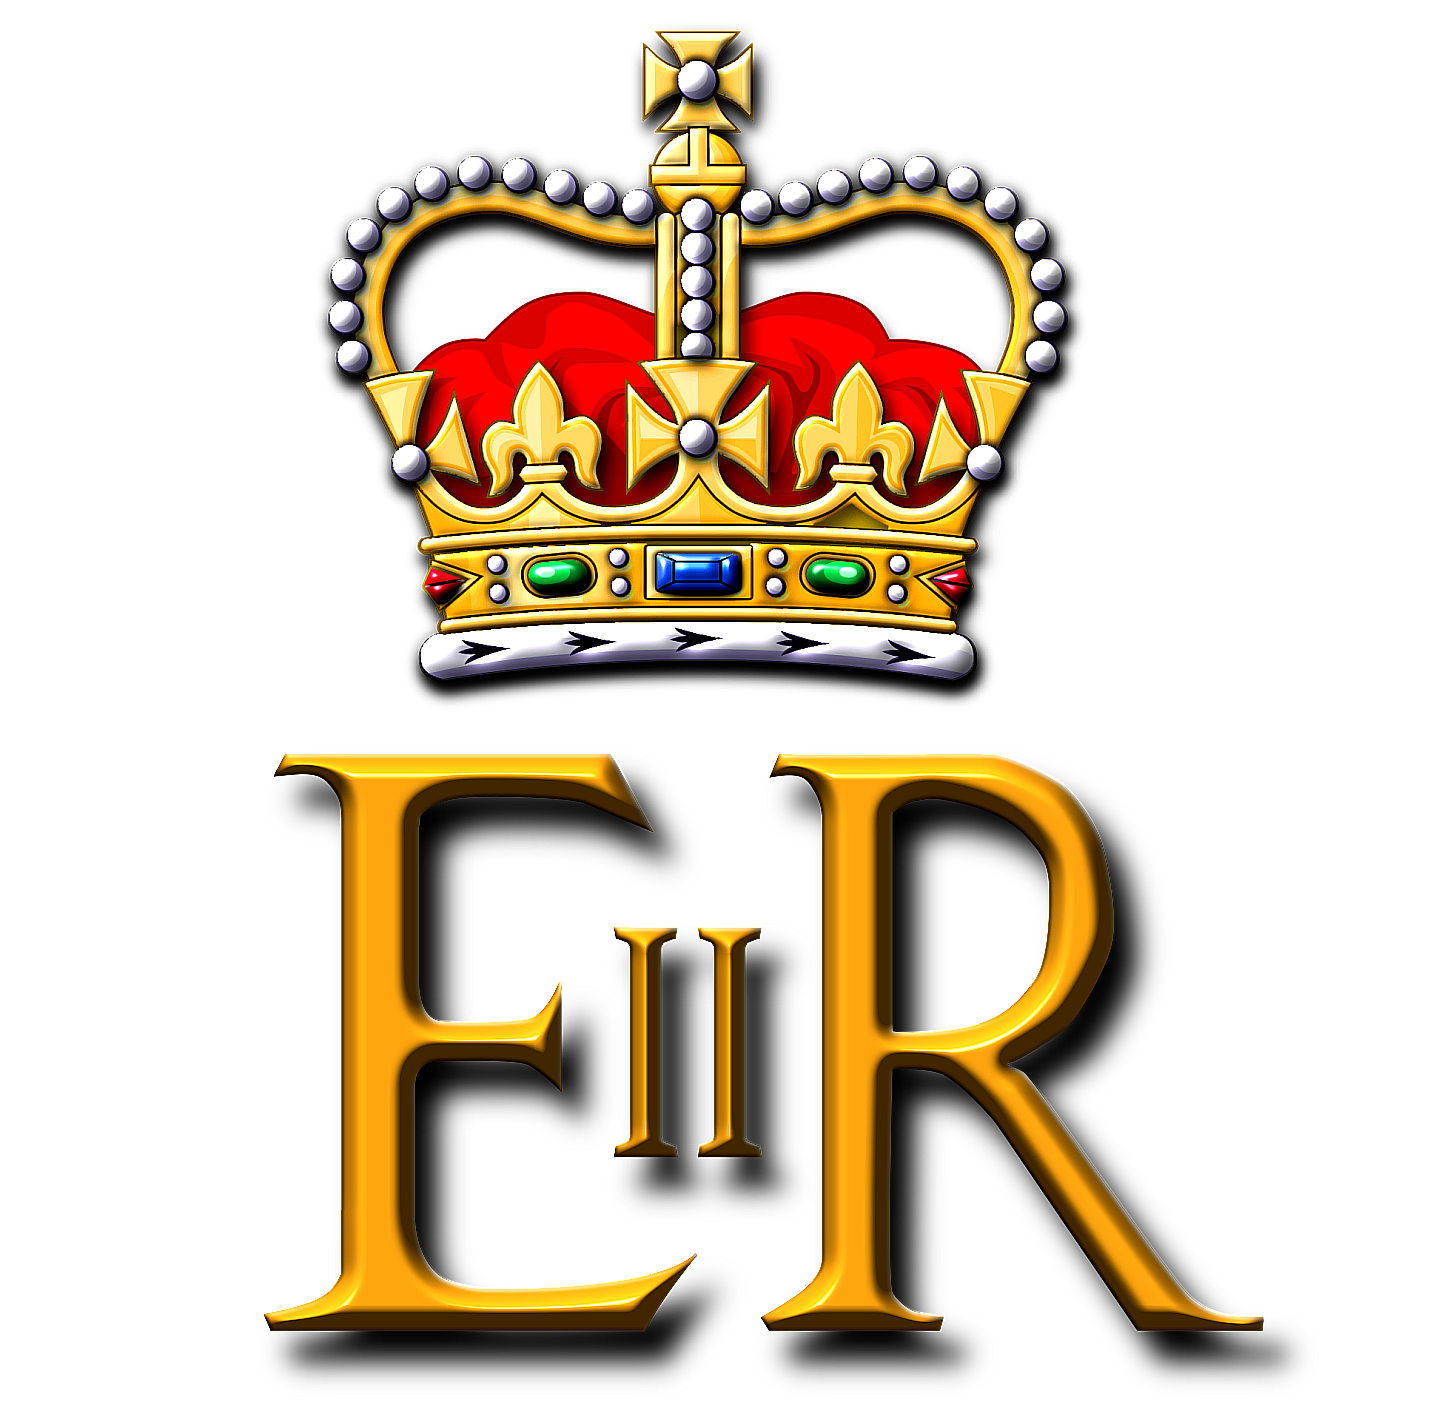 Royal Cypher - Queen Elizabeth II - Art of Heraldry - Peter Crawford.png